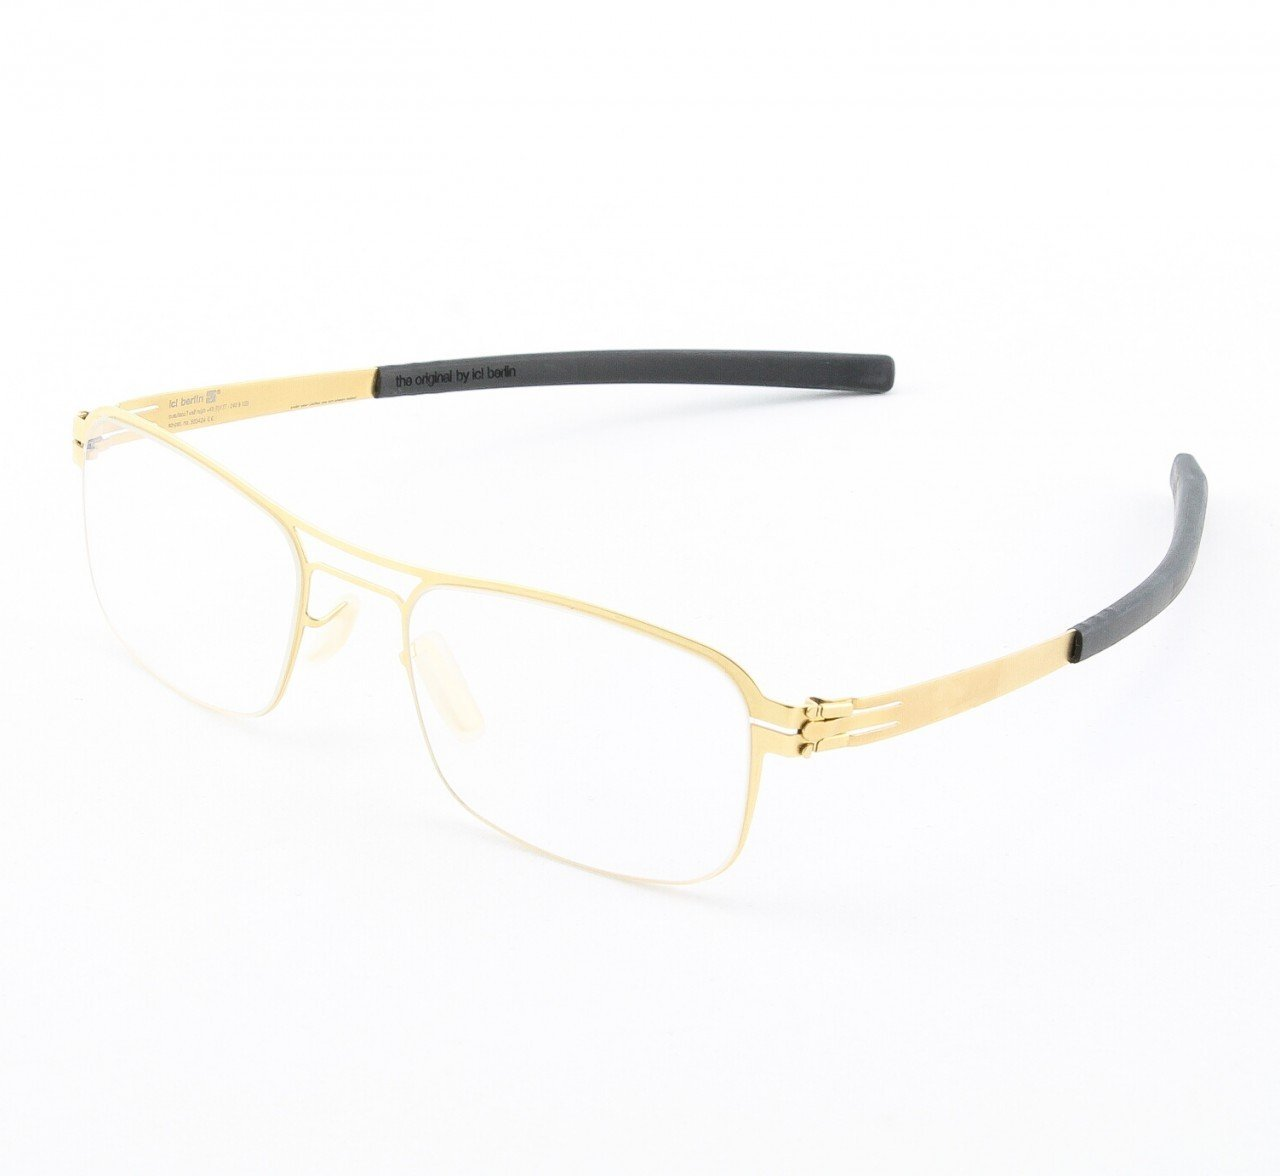 ic! Berlin Motti D. Eyeglasses Col. matte Gold with Clear Lenses